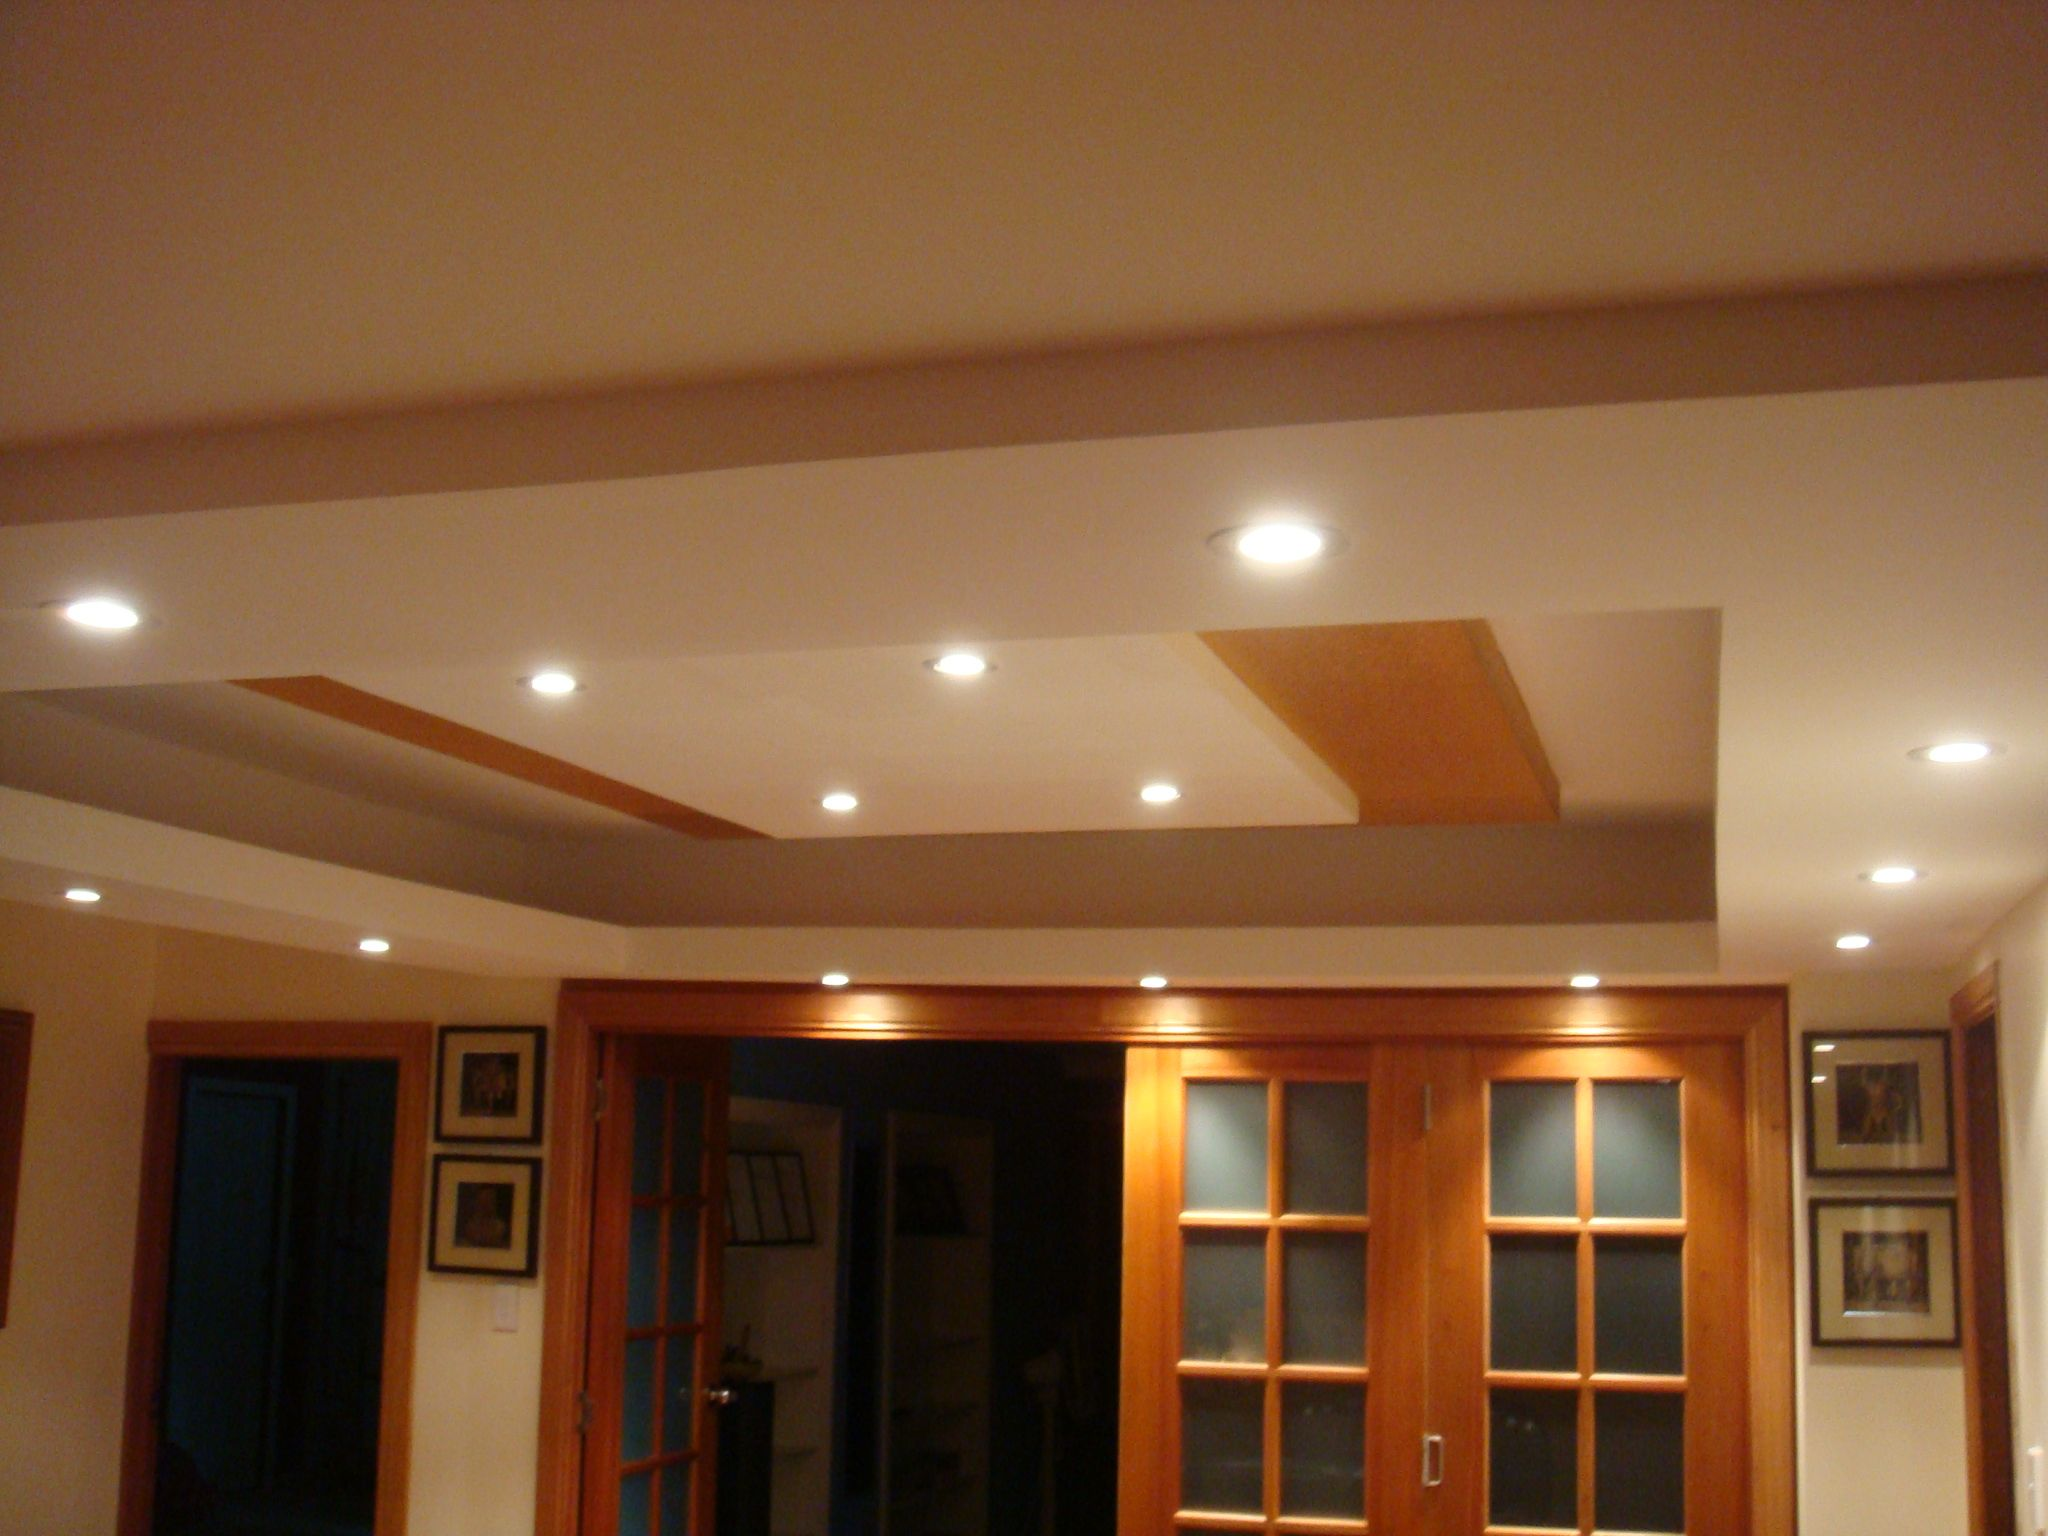 Latest gypsum ceiling designs hall image vectronstudios for Latest ceiling designs living room